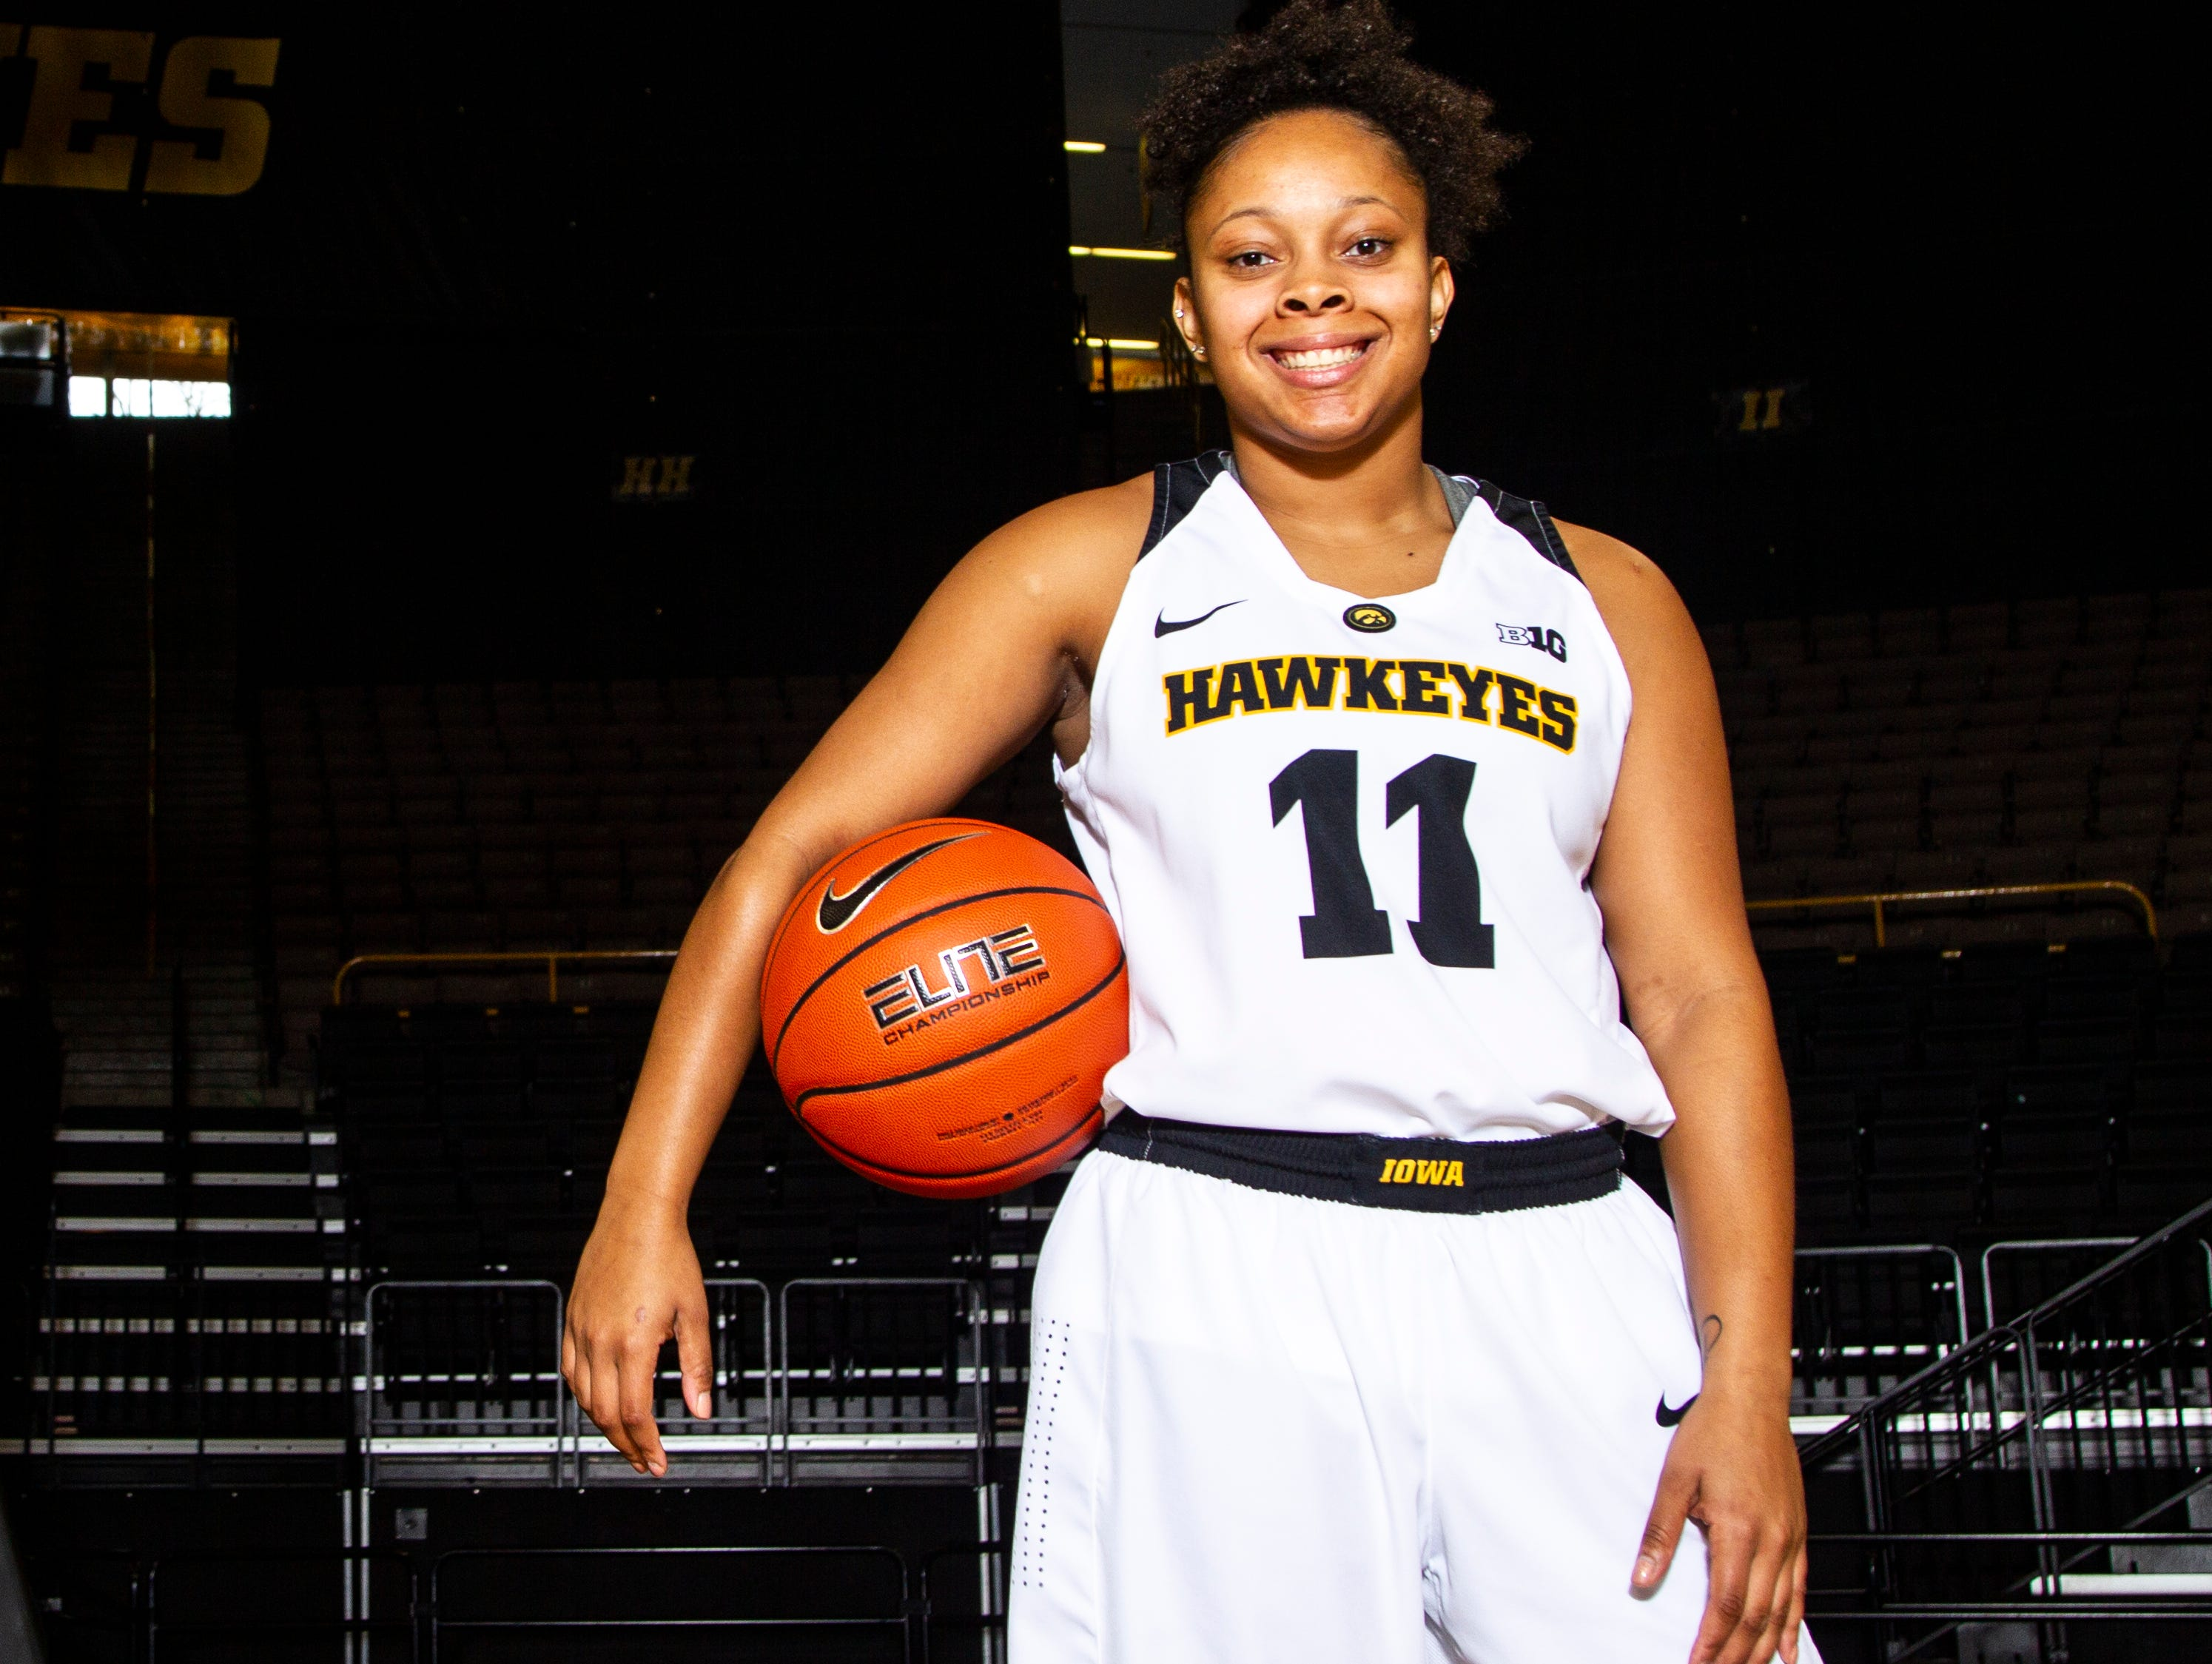 Iowa guard Tania Davis (11) poses for a portrait during Hawkeye women's basketball media day on Wednesday, Oct. 31, 2018, at Carver-Hawkeye Arena in Iowa City.